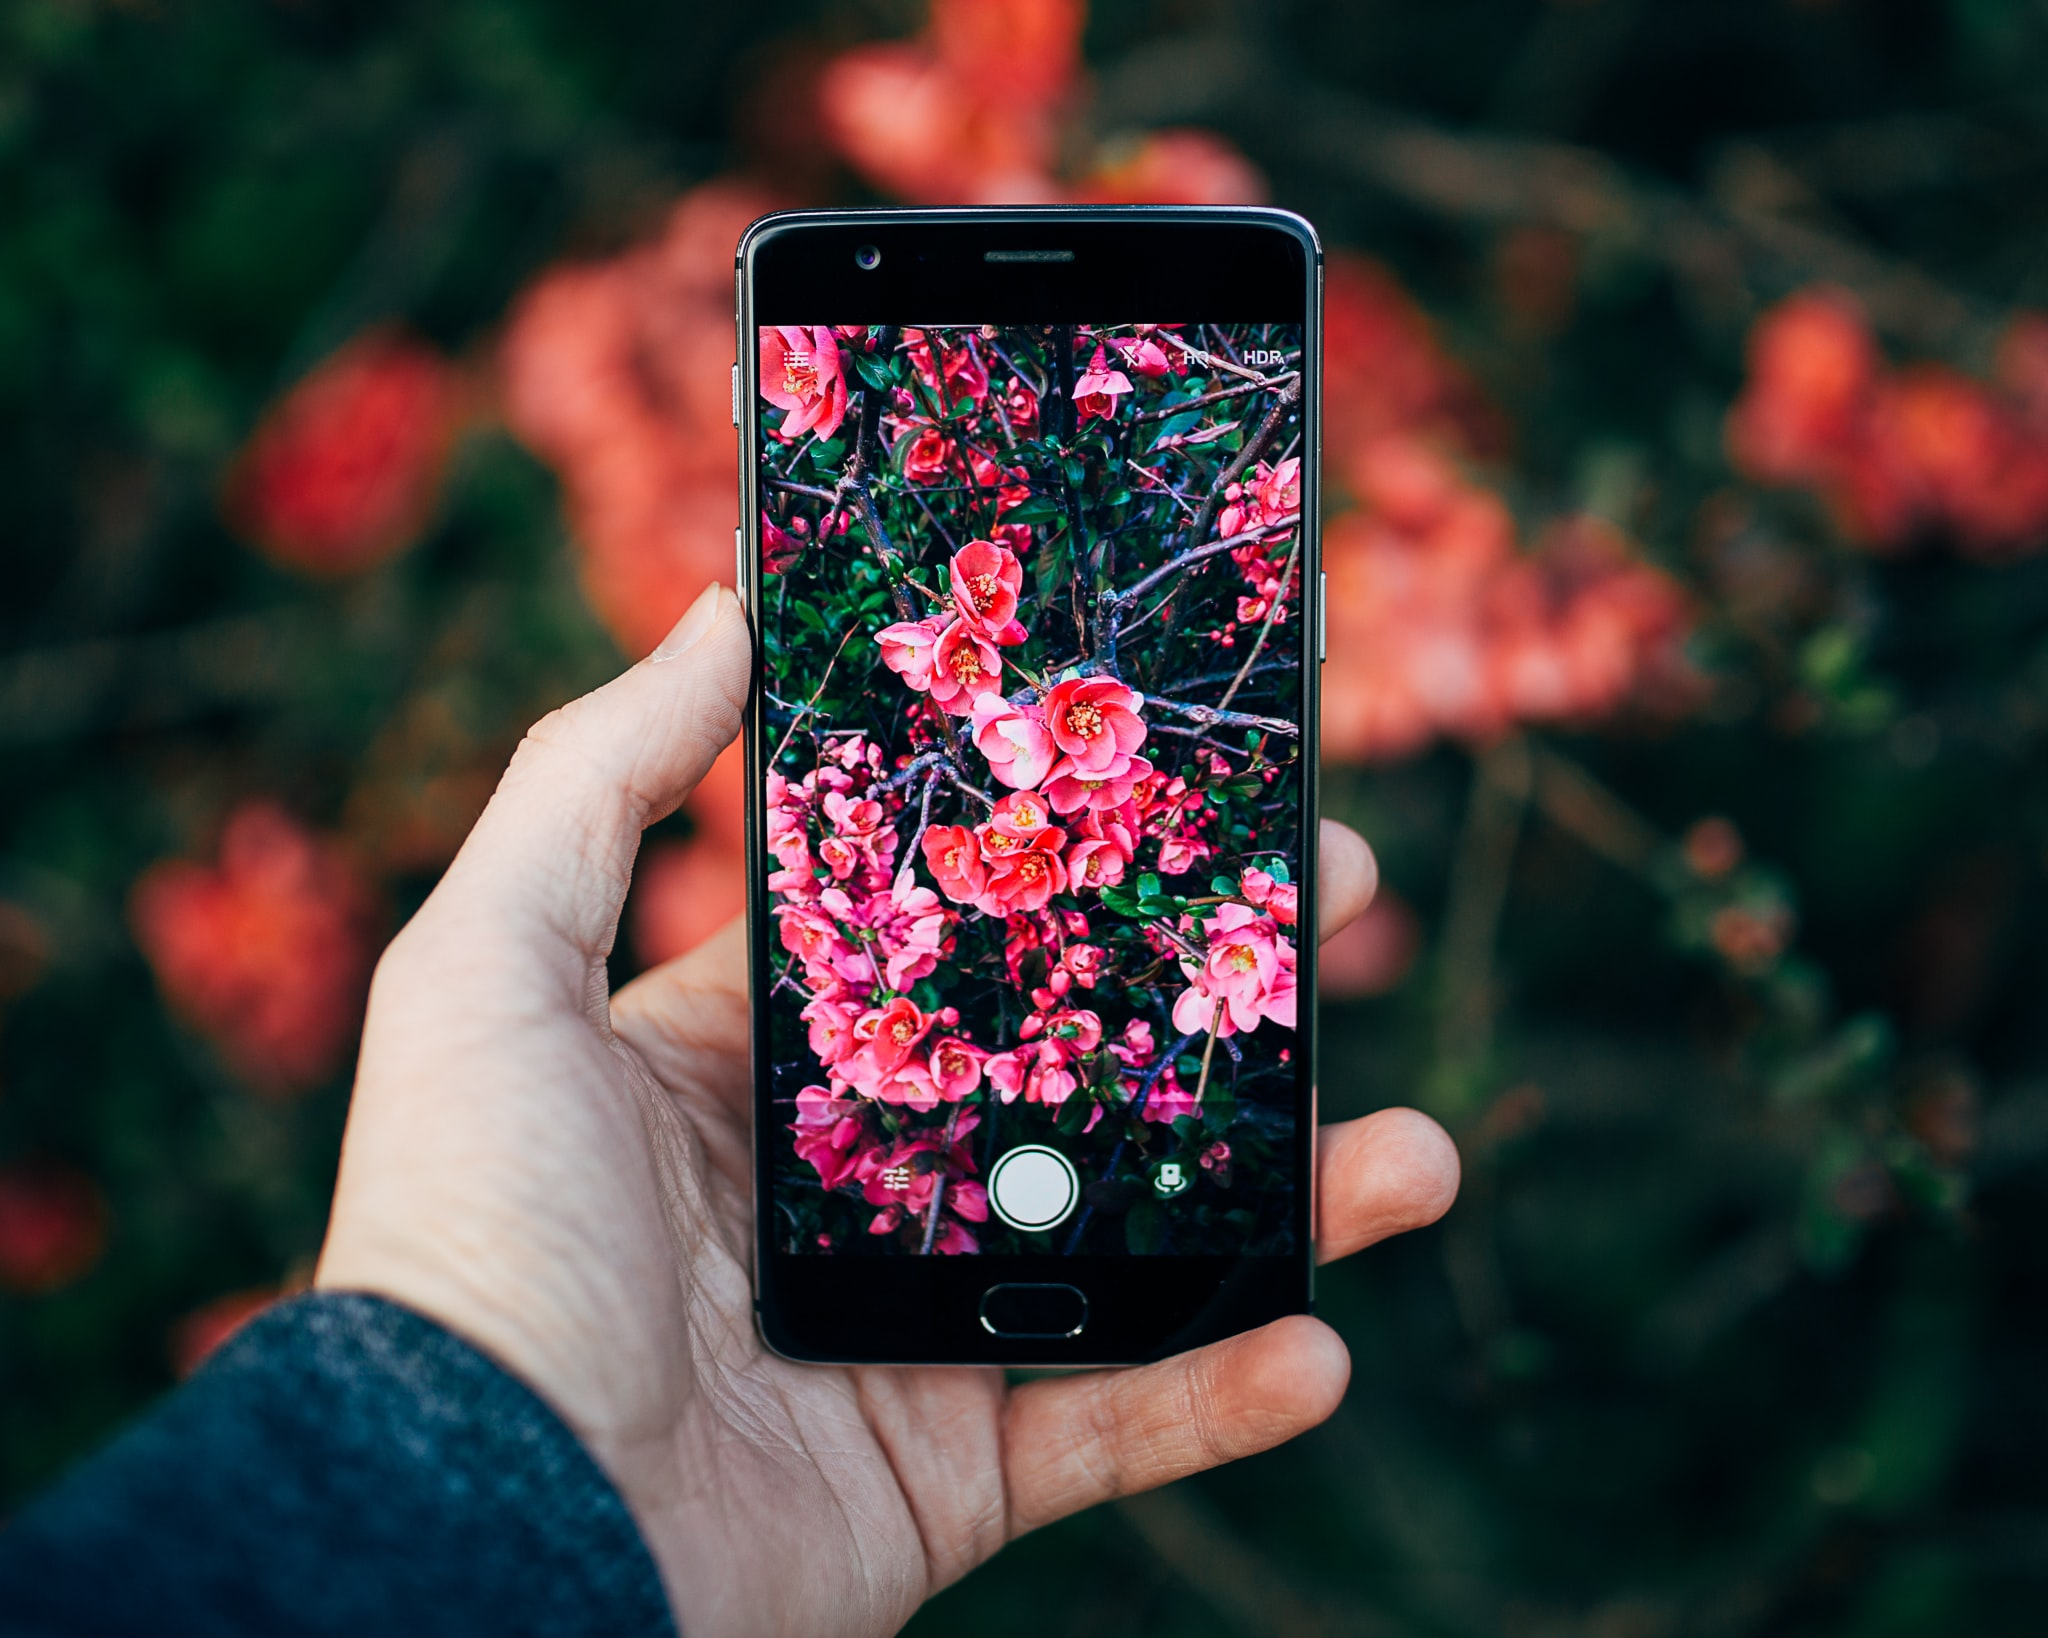 person taking a photo of pink petaled flowers during daytime